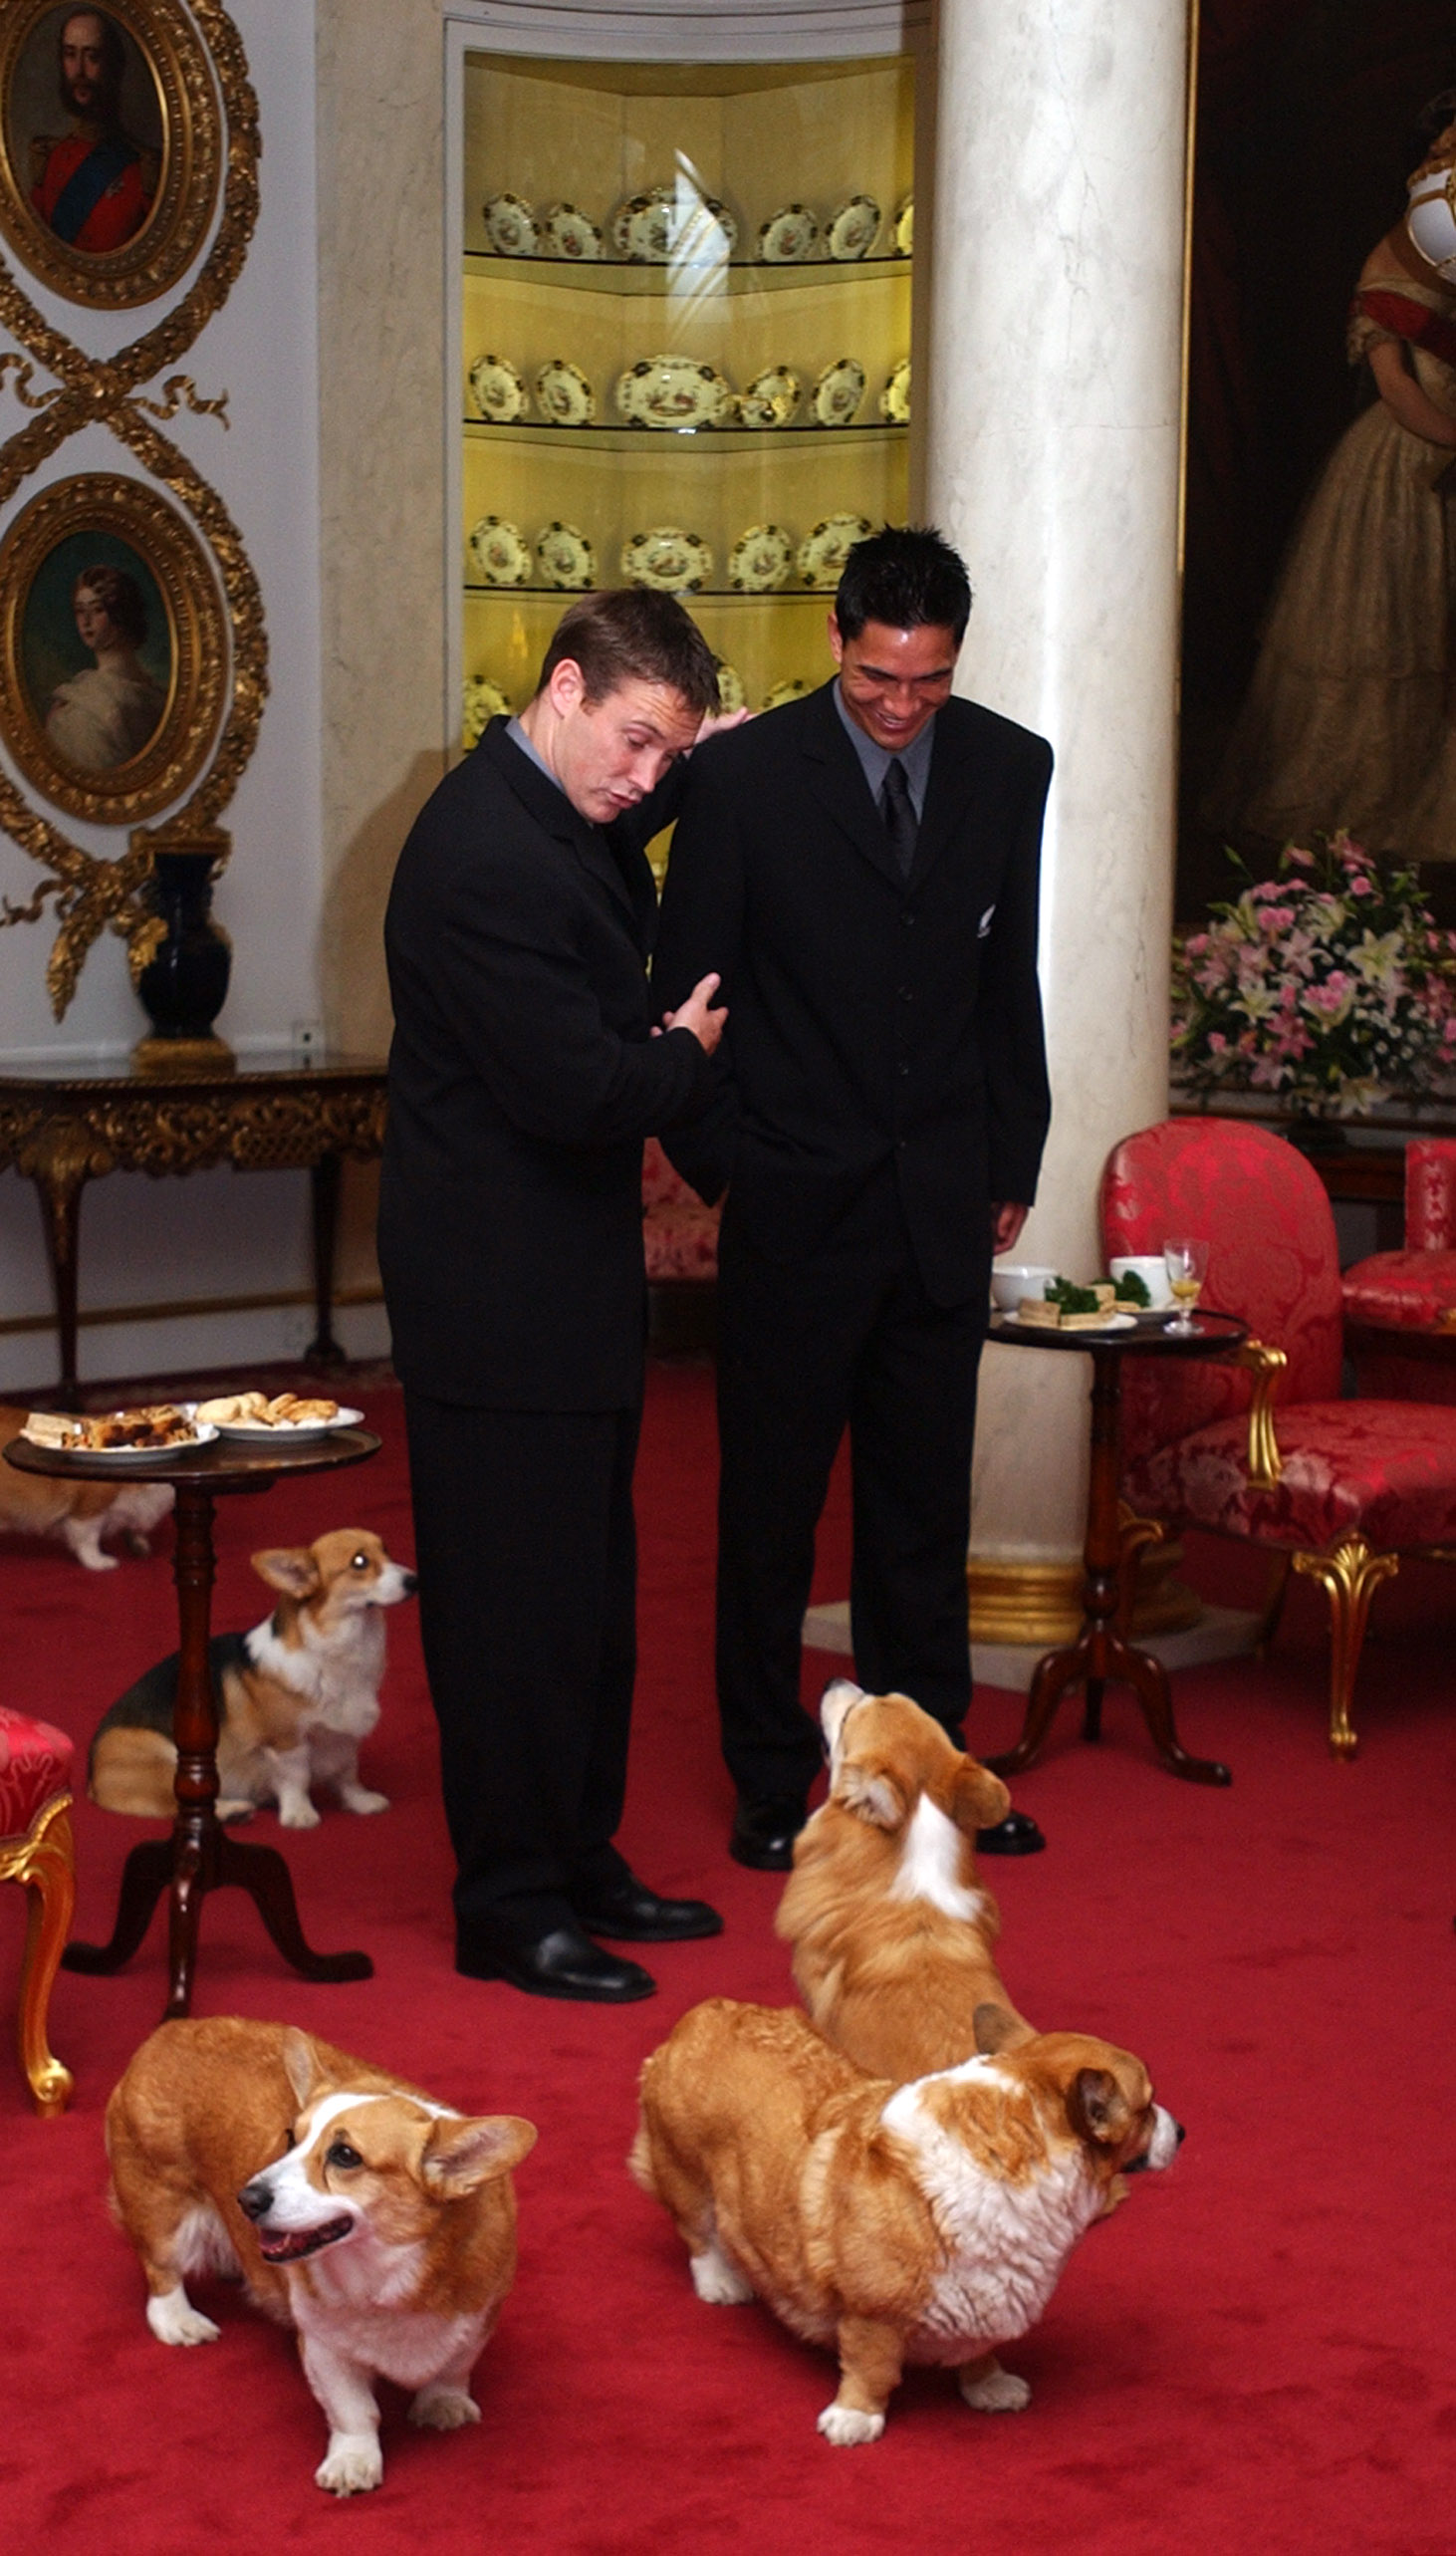 Andrew Mehrtens introduces young All Black tourist Regan King to one of Her Majesty Queen Elizabeth II corgies at an afternoon tea for the team at Buckingham Palace, Tuesday. (Getty Images)